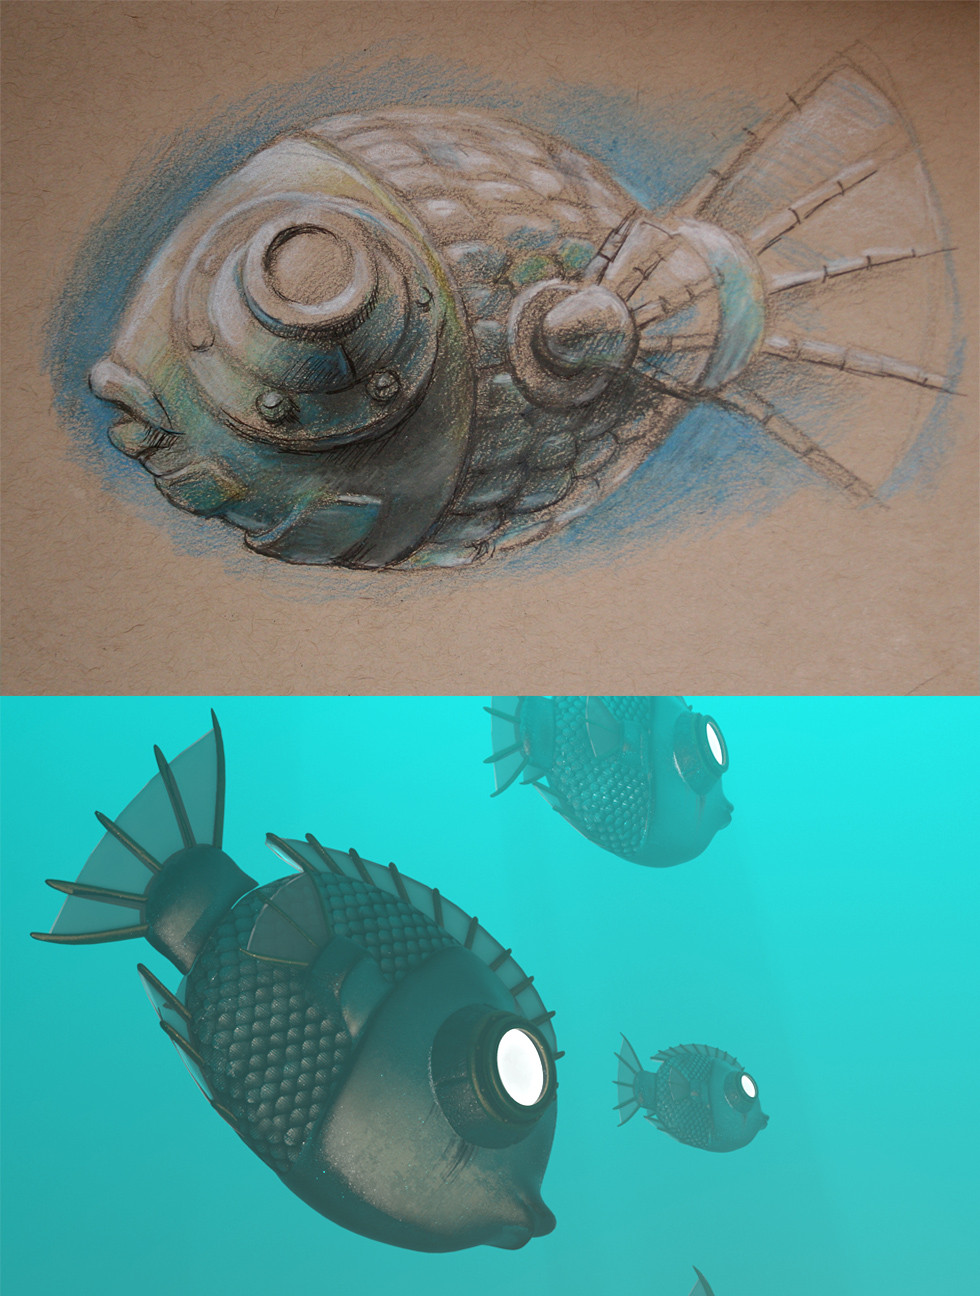 Fish Sketch and 3d Model comparison